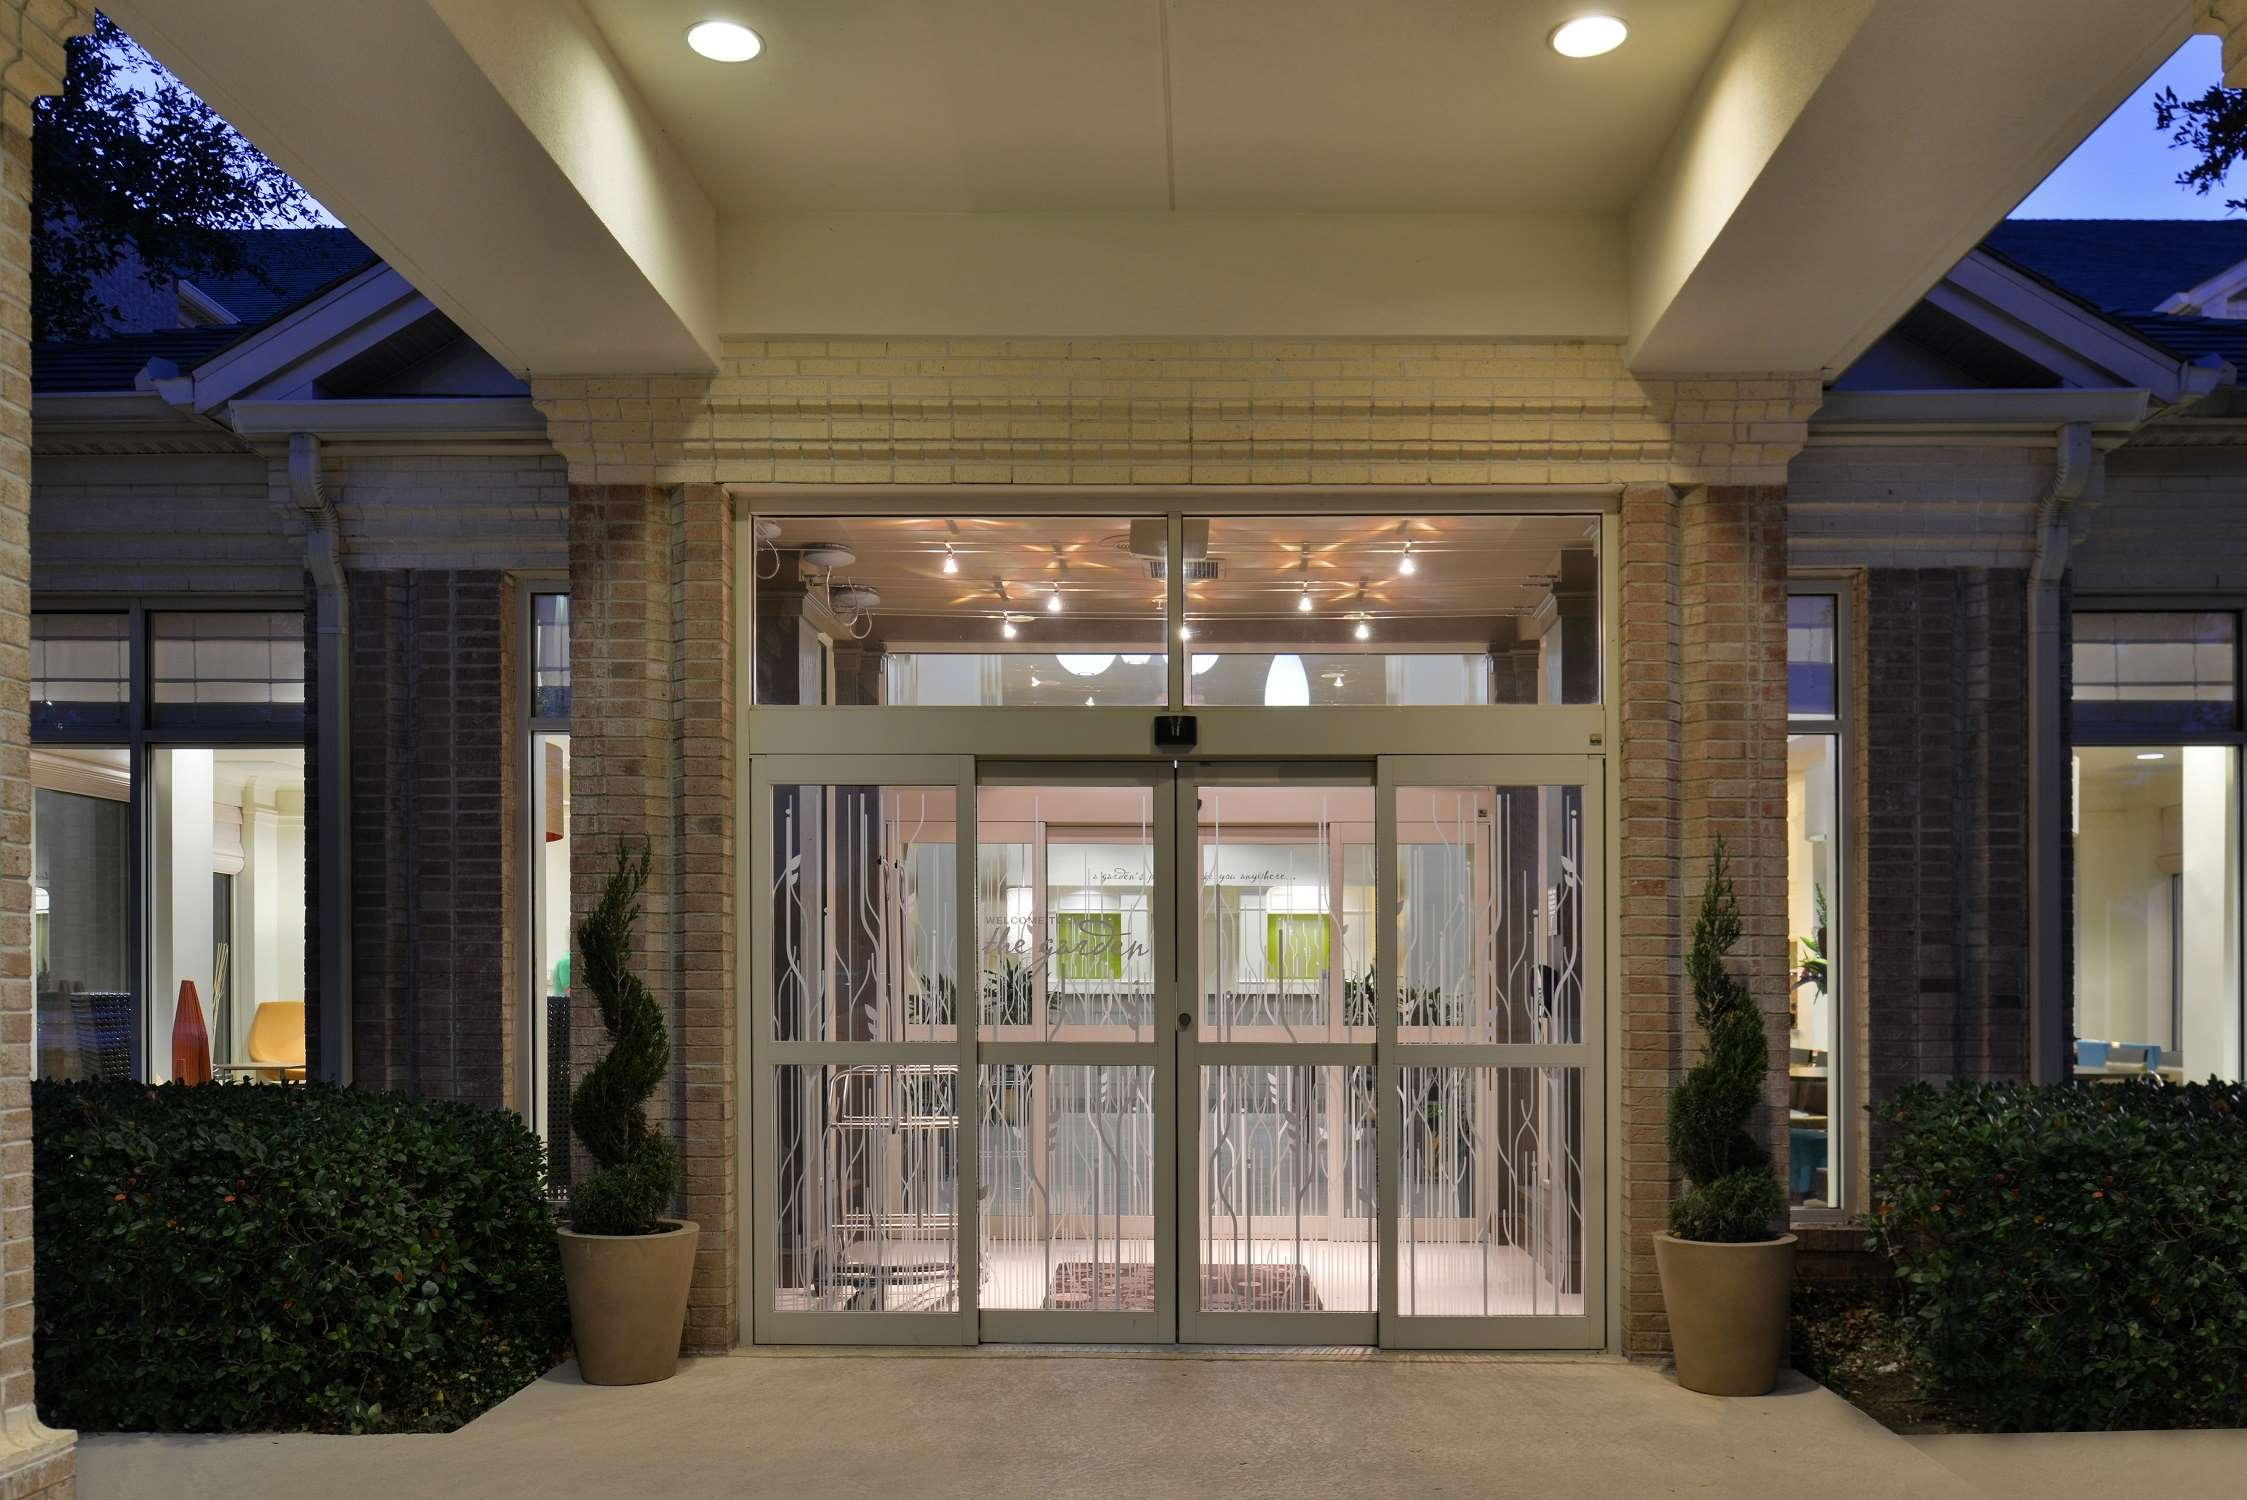 Hilton Garden Inn Dallas/Addison image 2